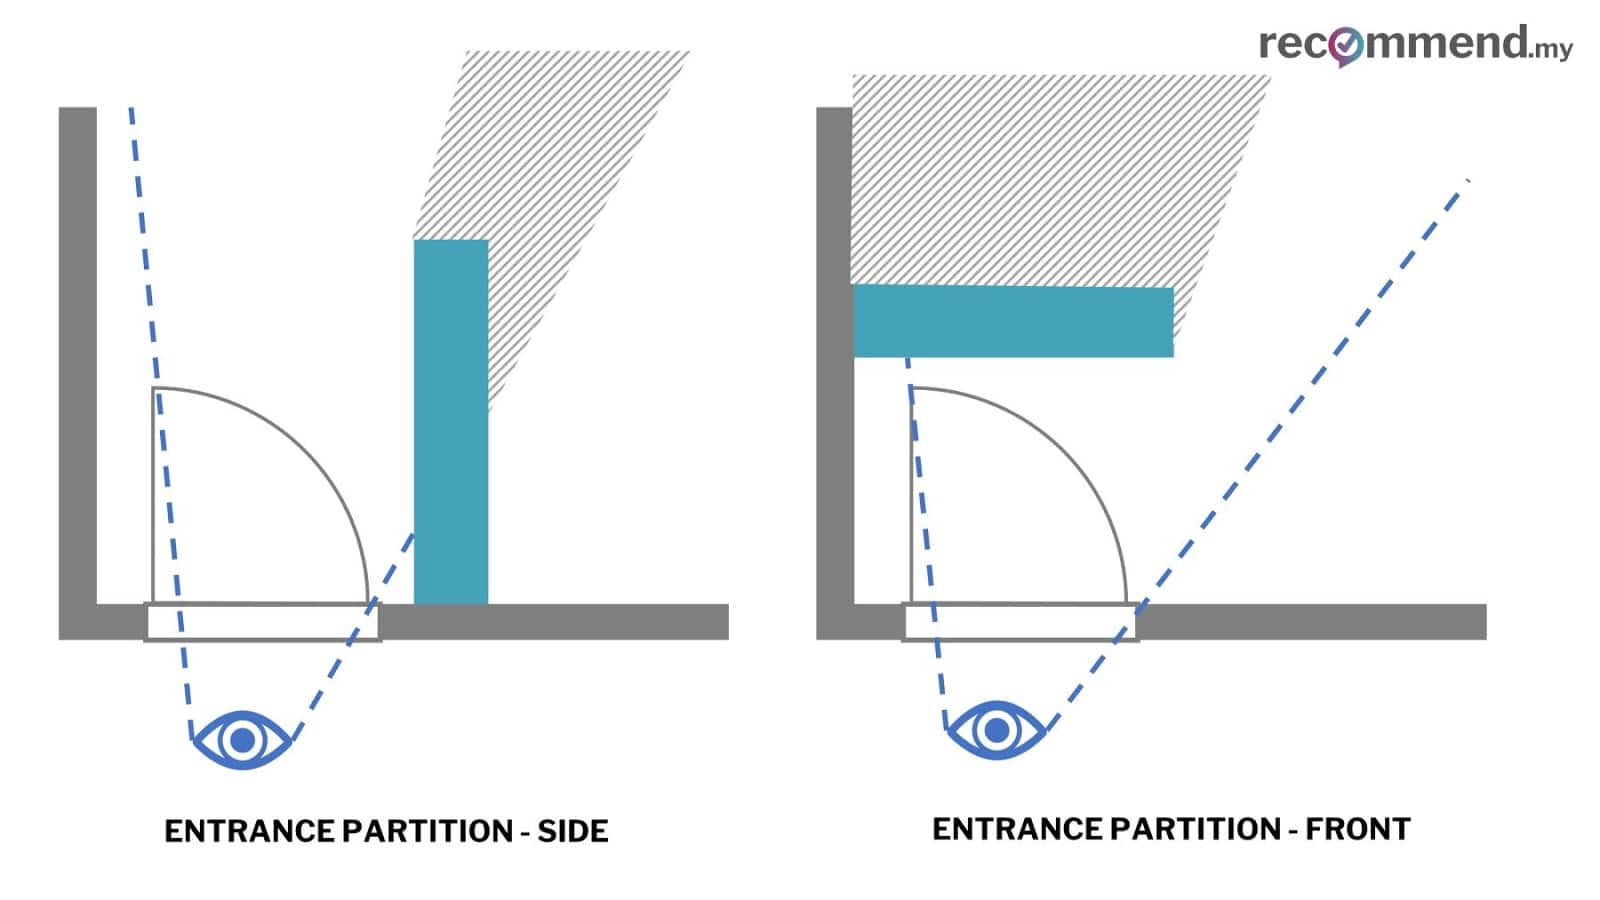 Above: Different placement of entrance partition and how it reduces the sight line for someone standing at the front door